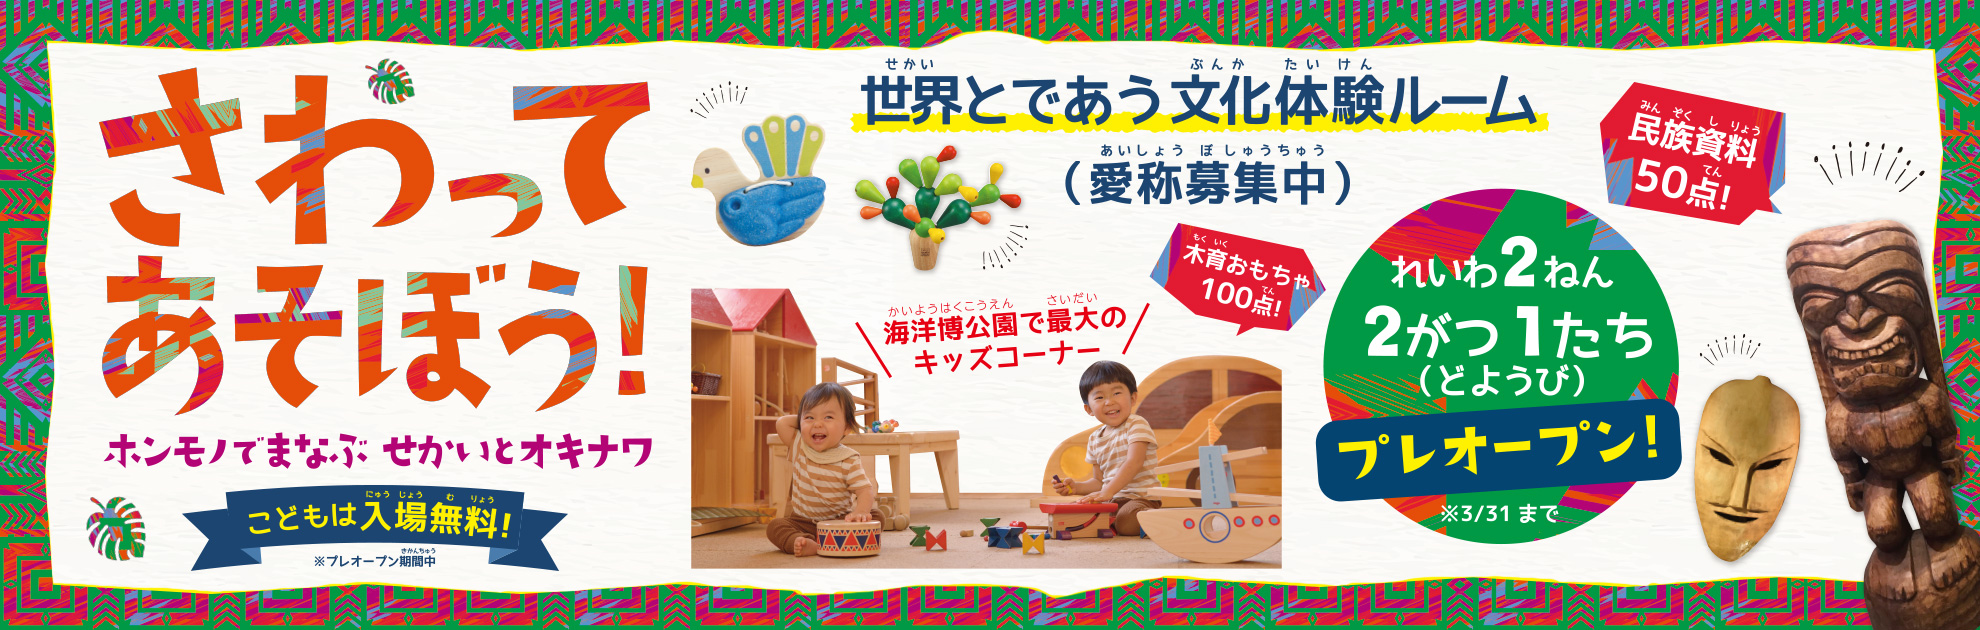 Culture experience room meeting the world touches, and let's play! Genuine article demanabusekaito Okinawa